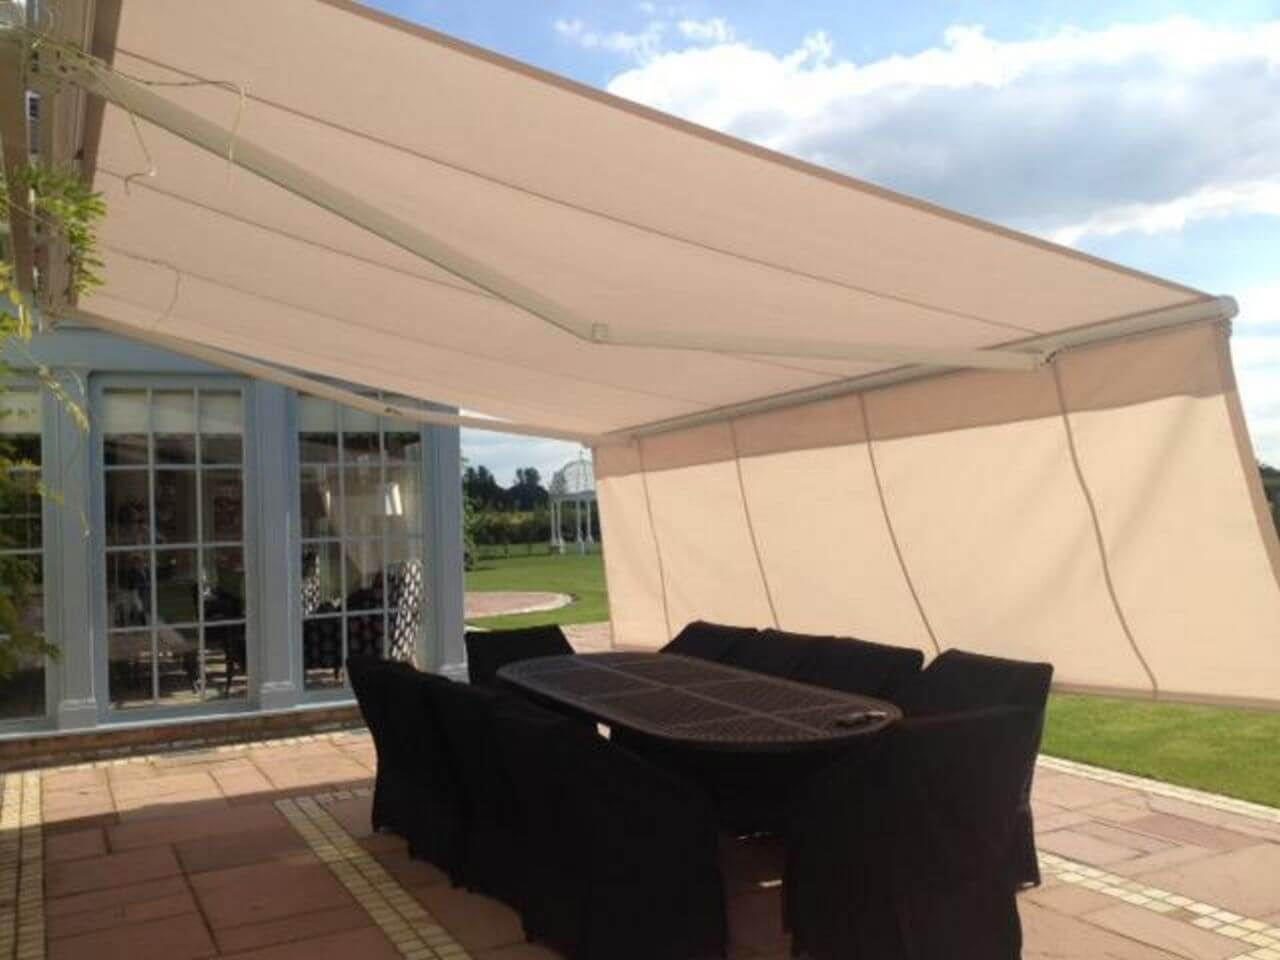 Harol patio awning with drop down valance